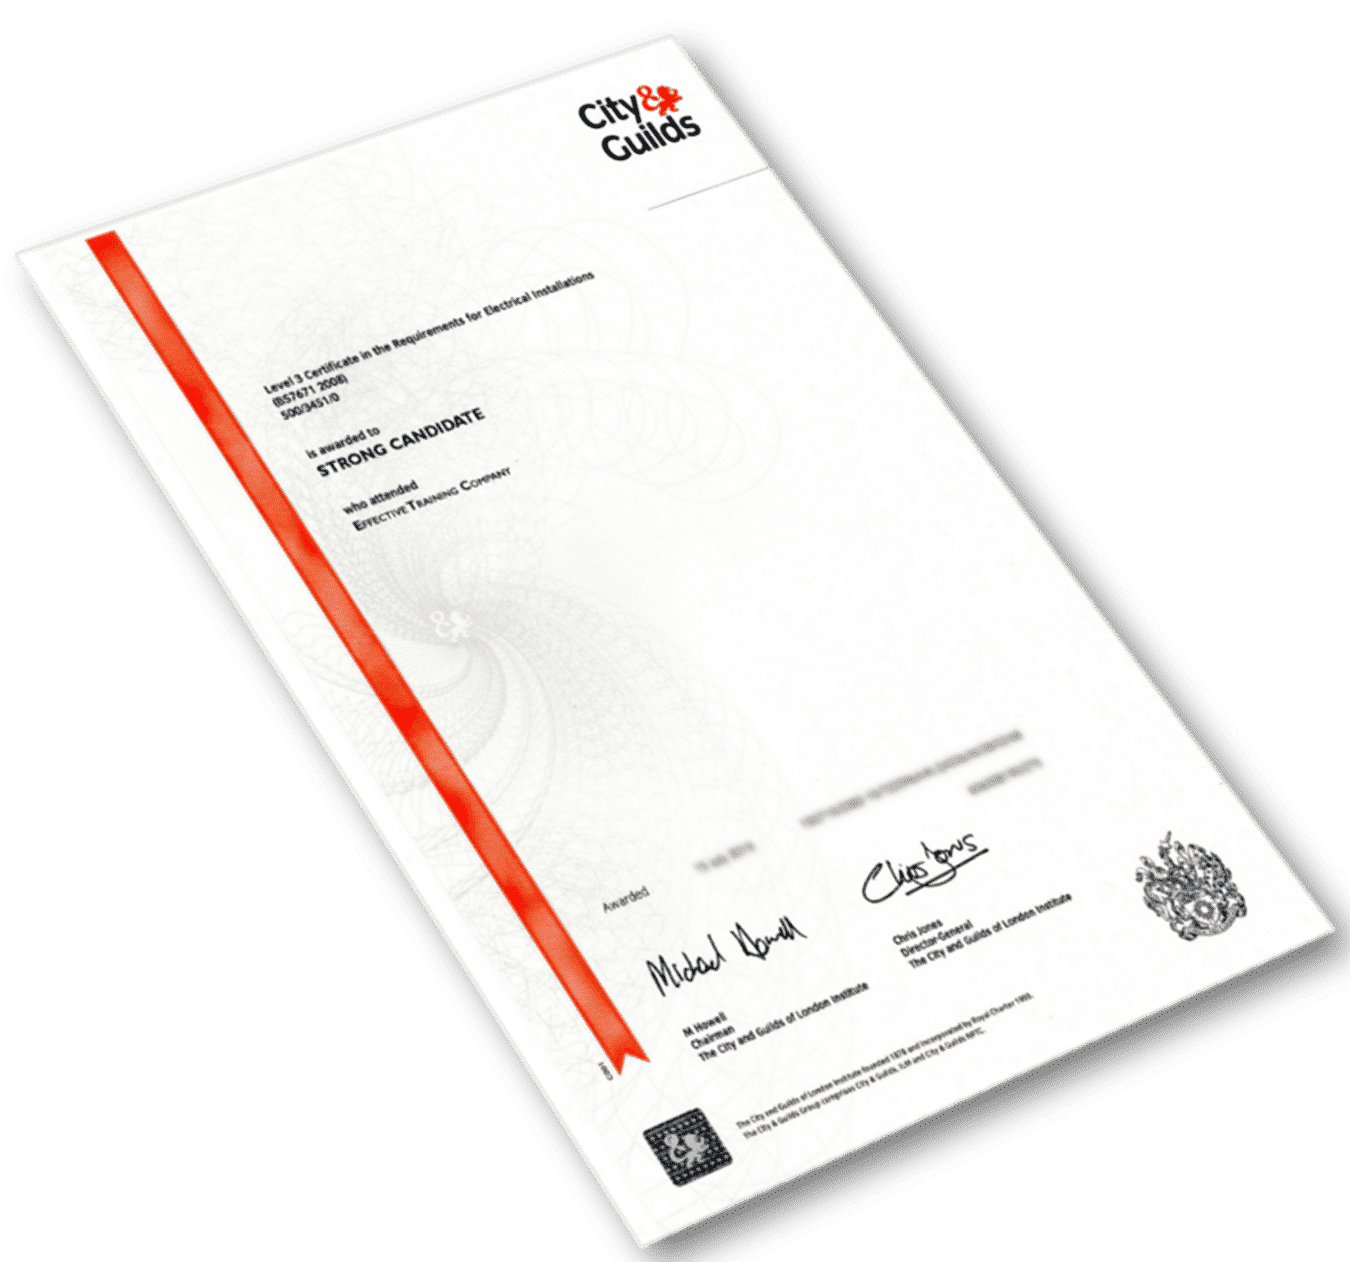 sample copy of City & Guilds accredited certificate